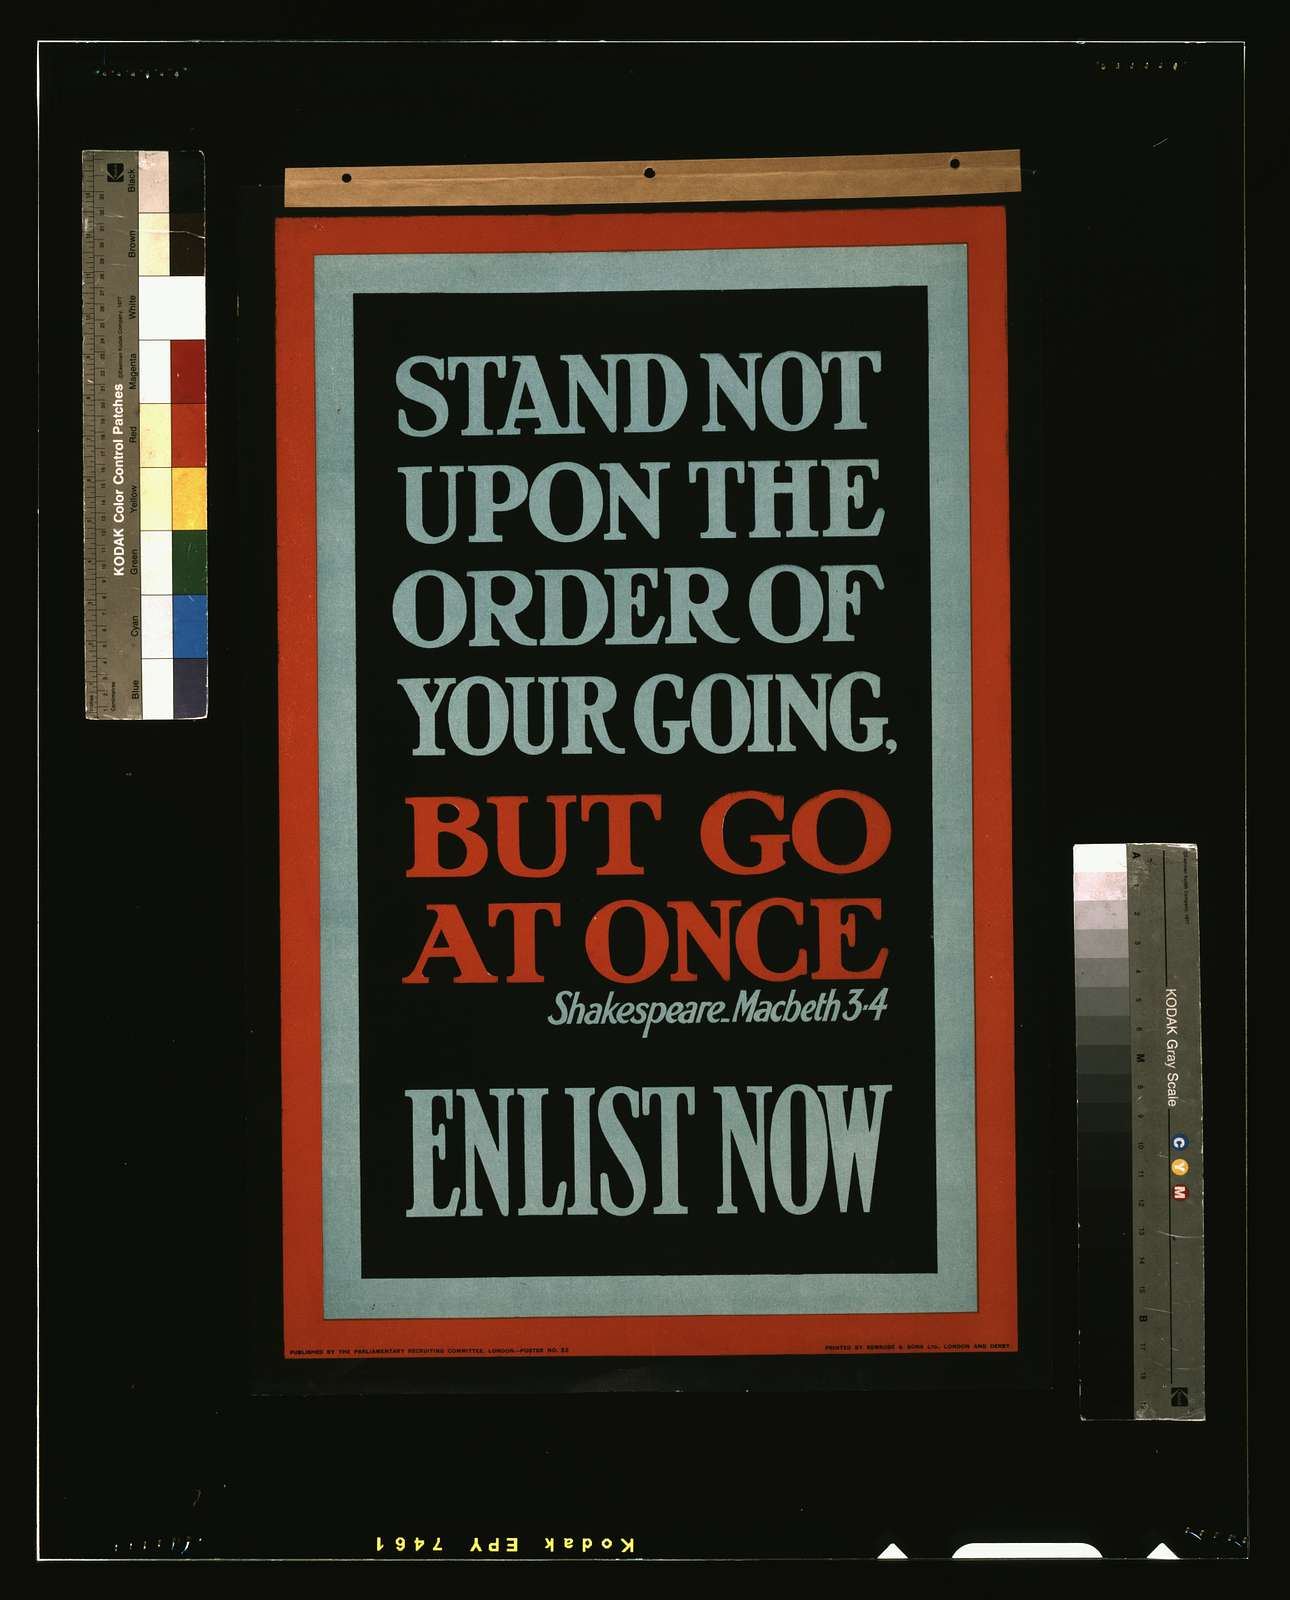 Stand not upon the order of your going, but go at once. Shakespeare, Macbeth 3-4. Enlist now / printed by Bemrose & Sons Ltd., London and Derby.